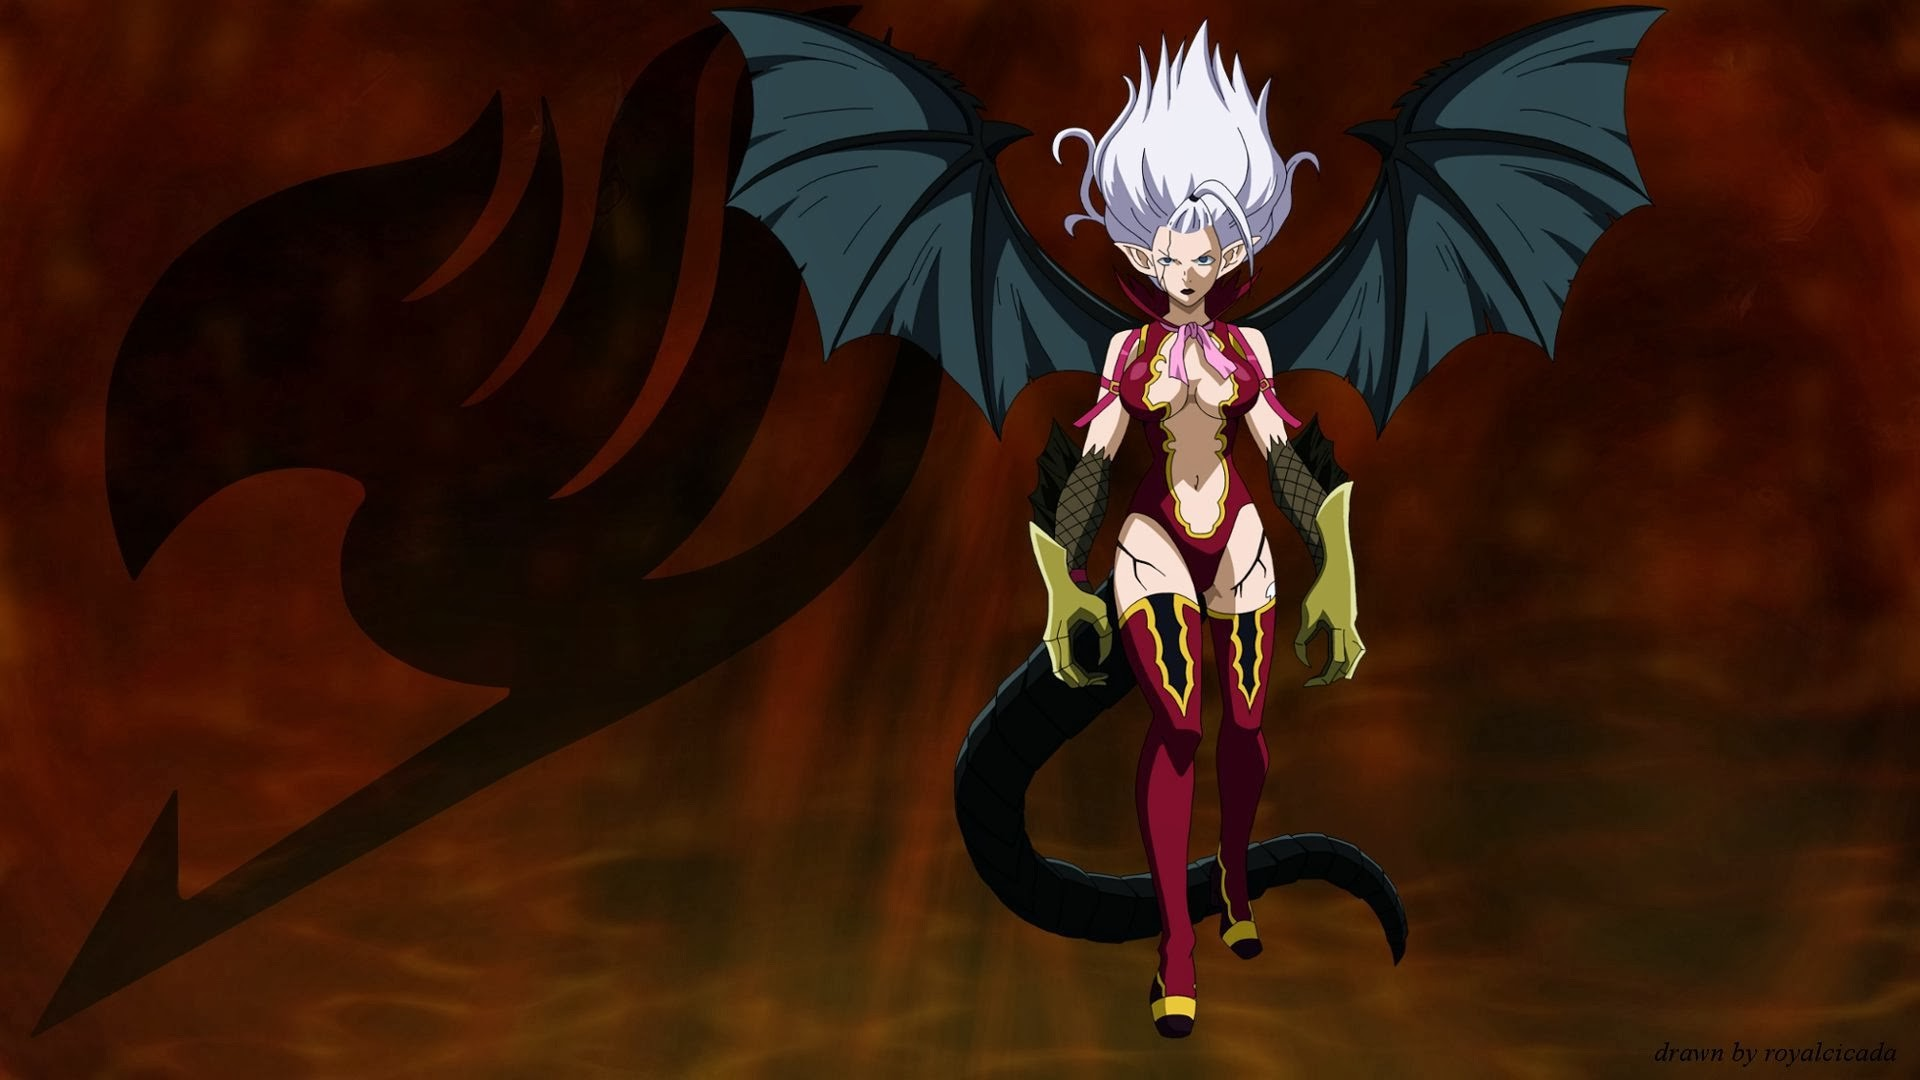 Mirajane Strauss Wallpapers 64 Pictures Forgetting passcode happens a lot to users. mirajane strauss wallpapers 64 pictures